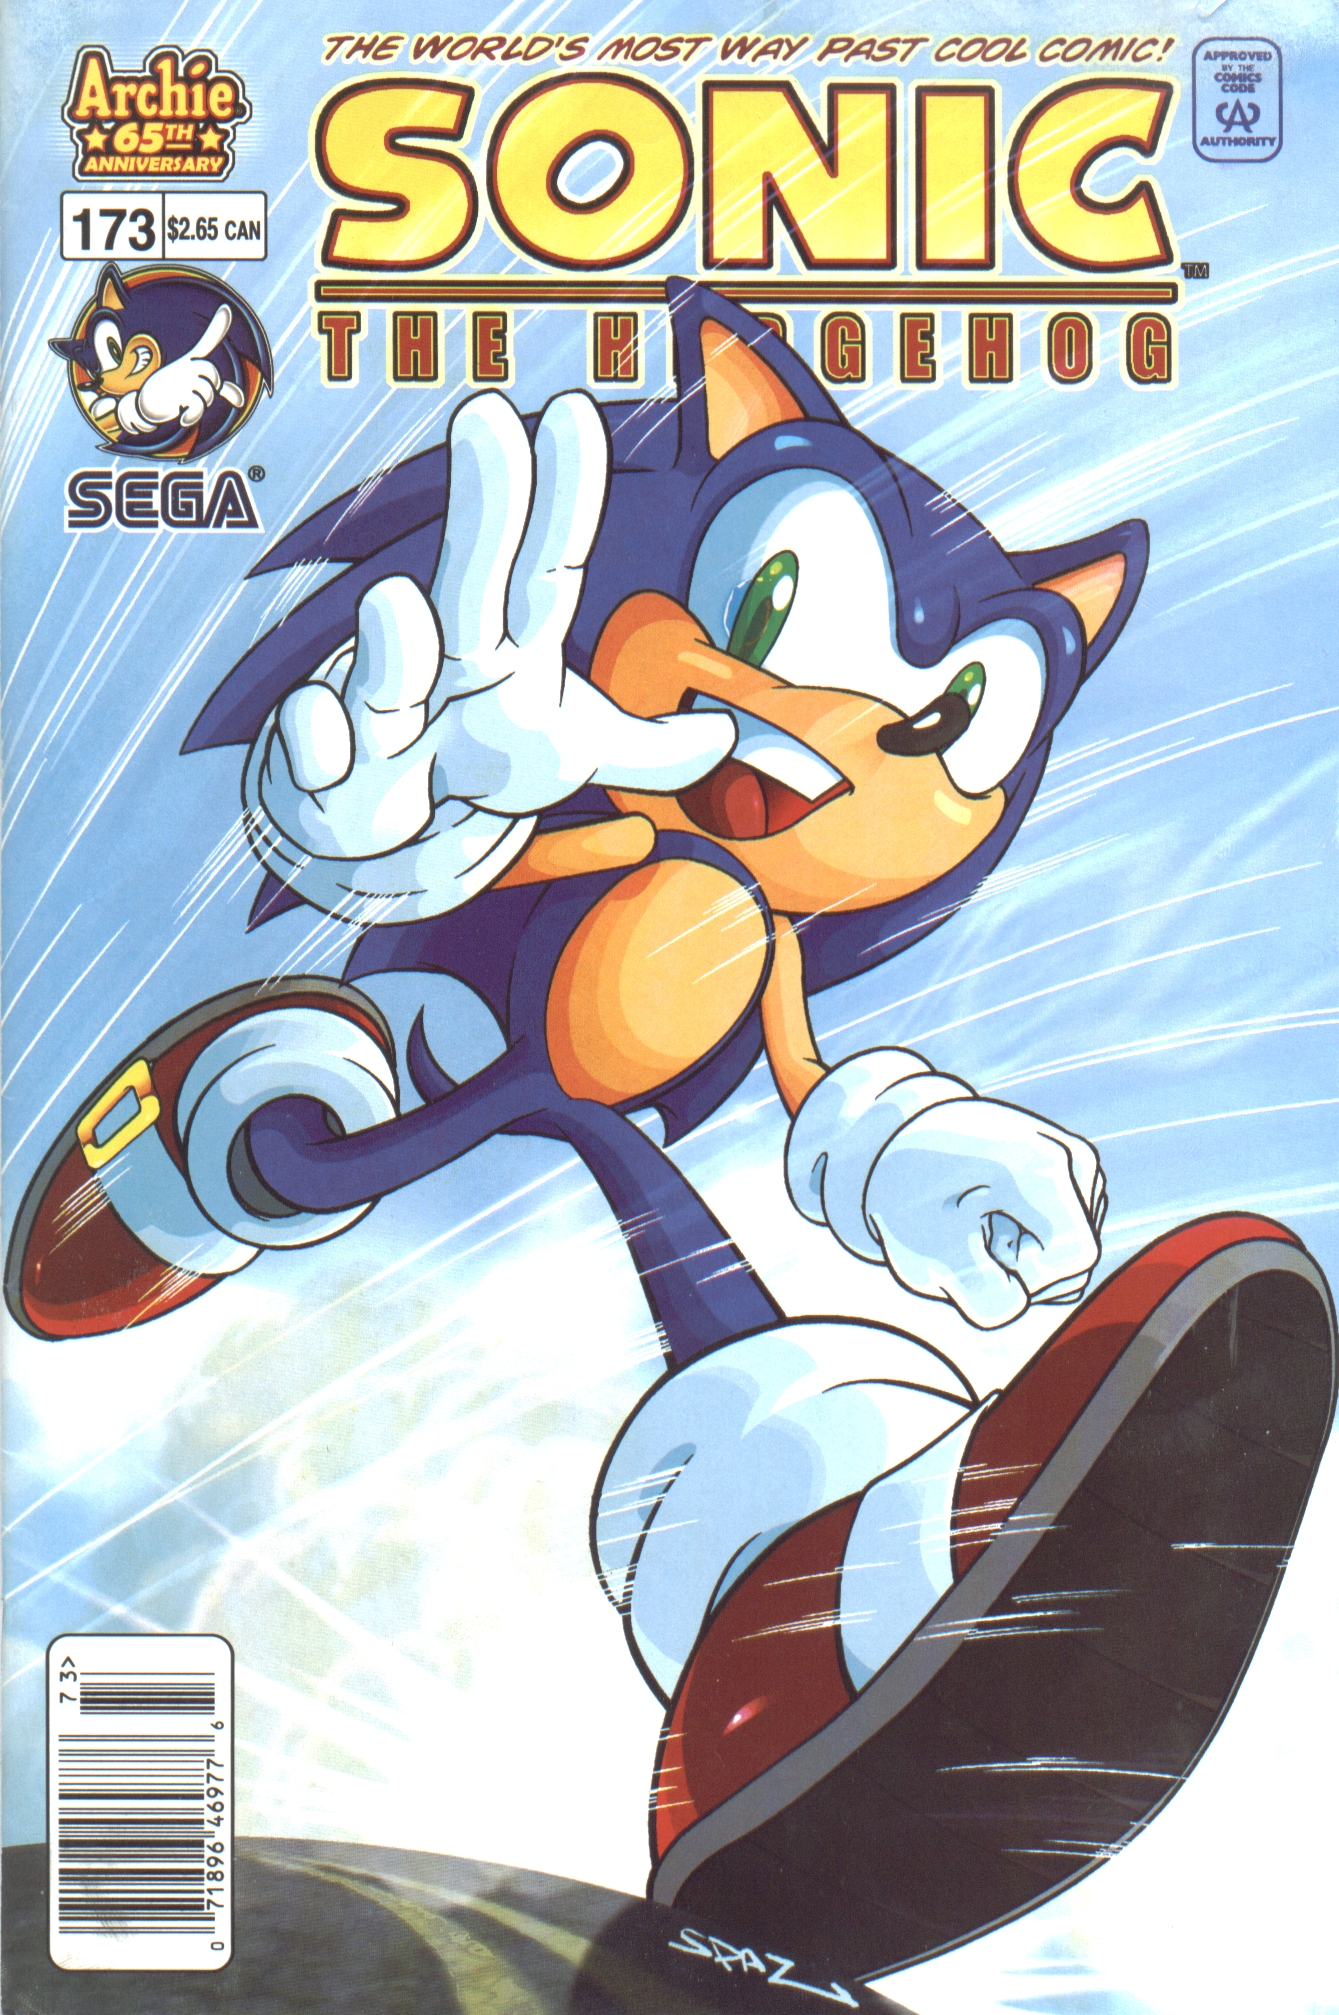 Sonic - Archie Adventure Series April 2007 Comic cover page